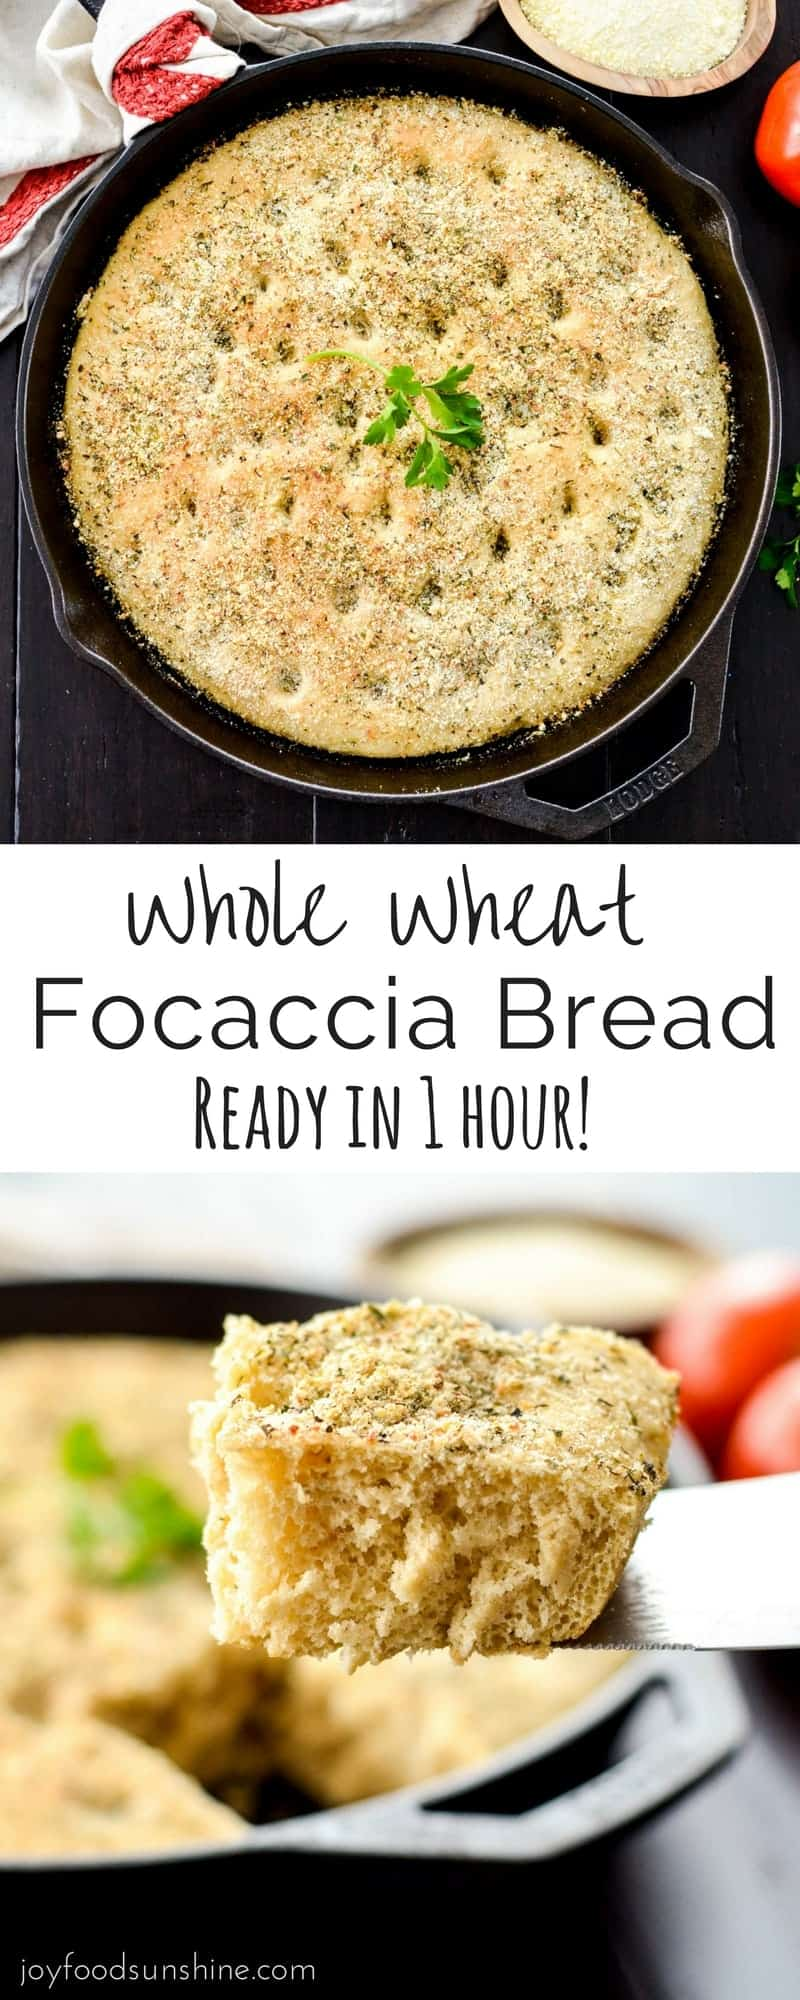 This Whole Wheat Focaccia Bread is ready in 1 hour flat! An easy, delicious bread recipe that is the perfect side dish to any meal!